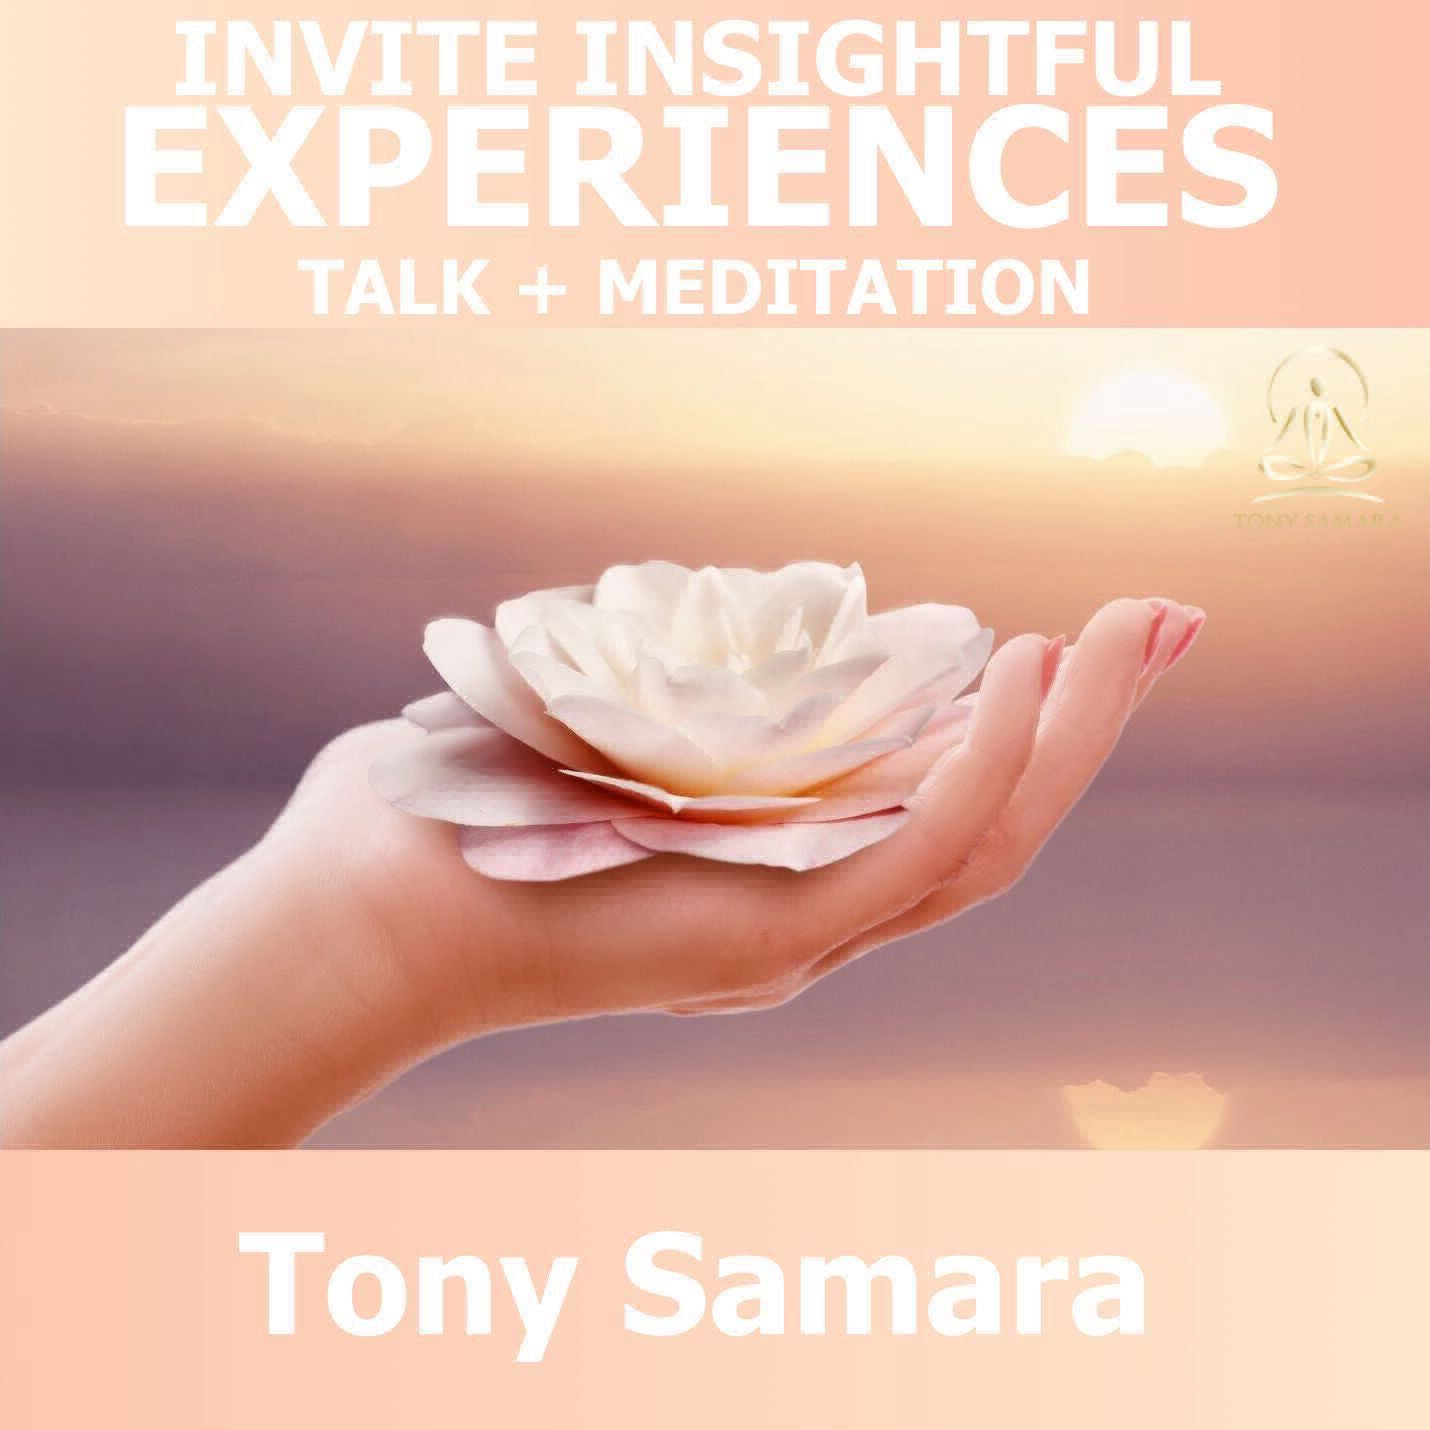 Invite Insightful Experiences - Talk + Meditation - Tony Samara Meditation